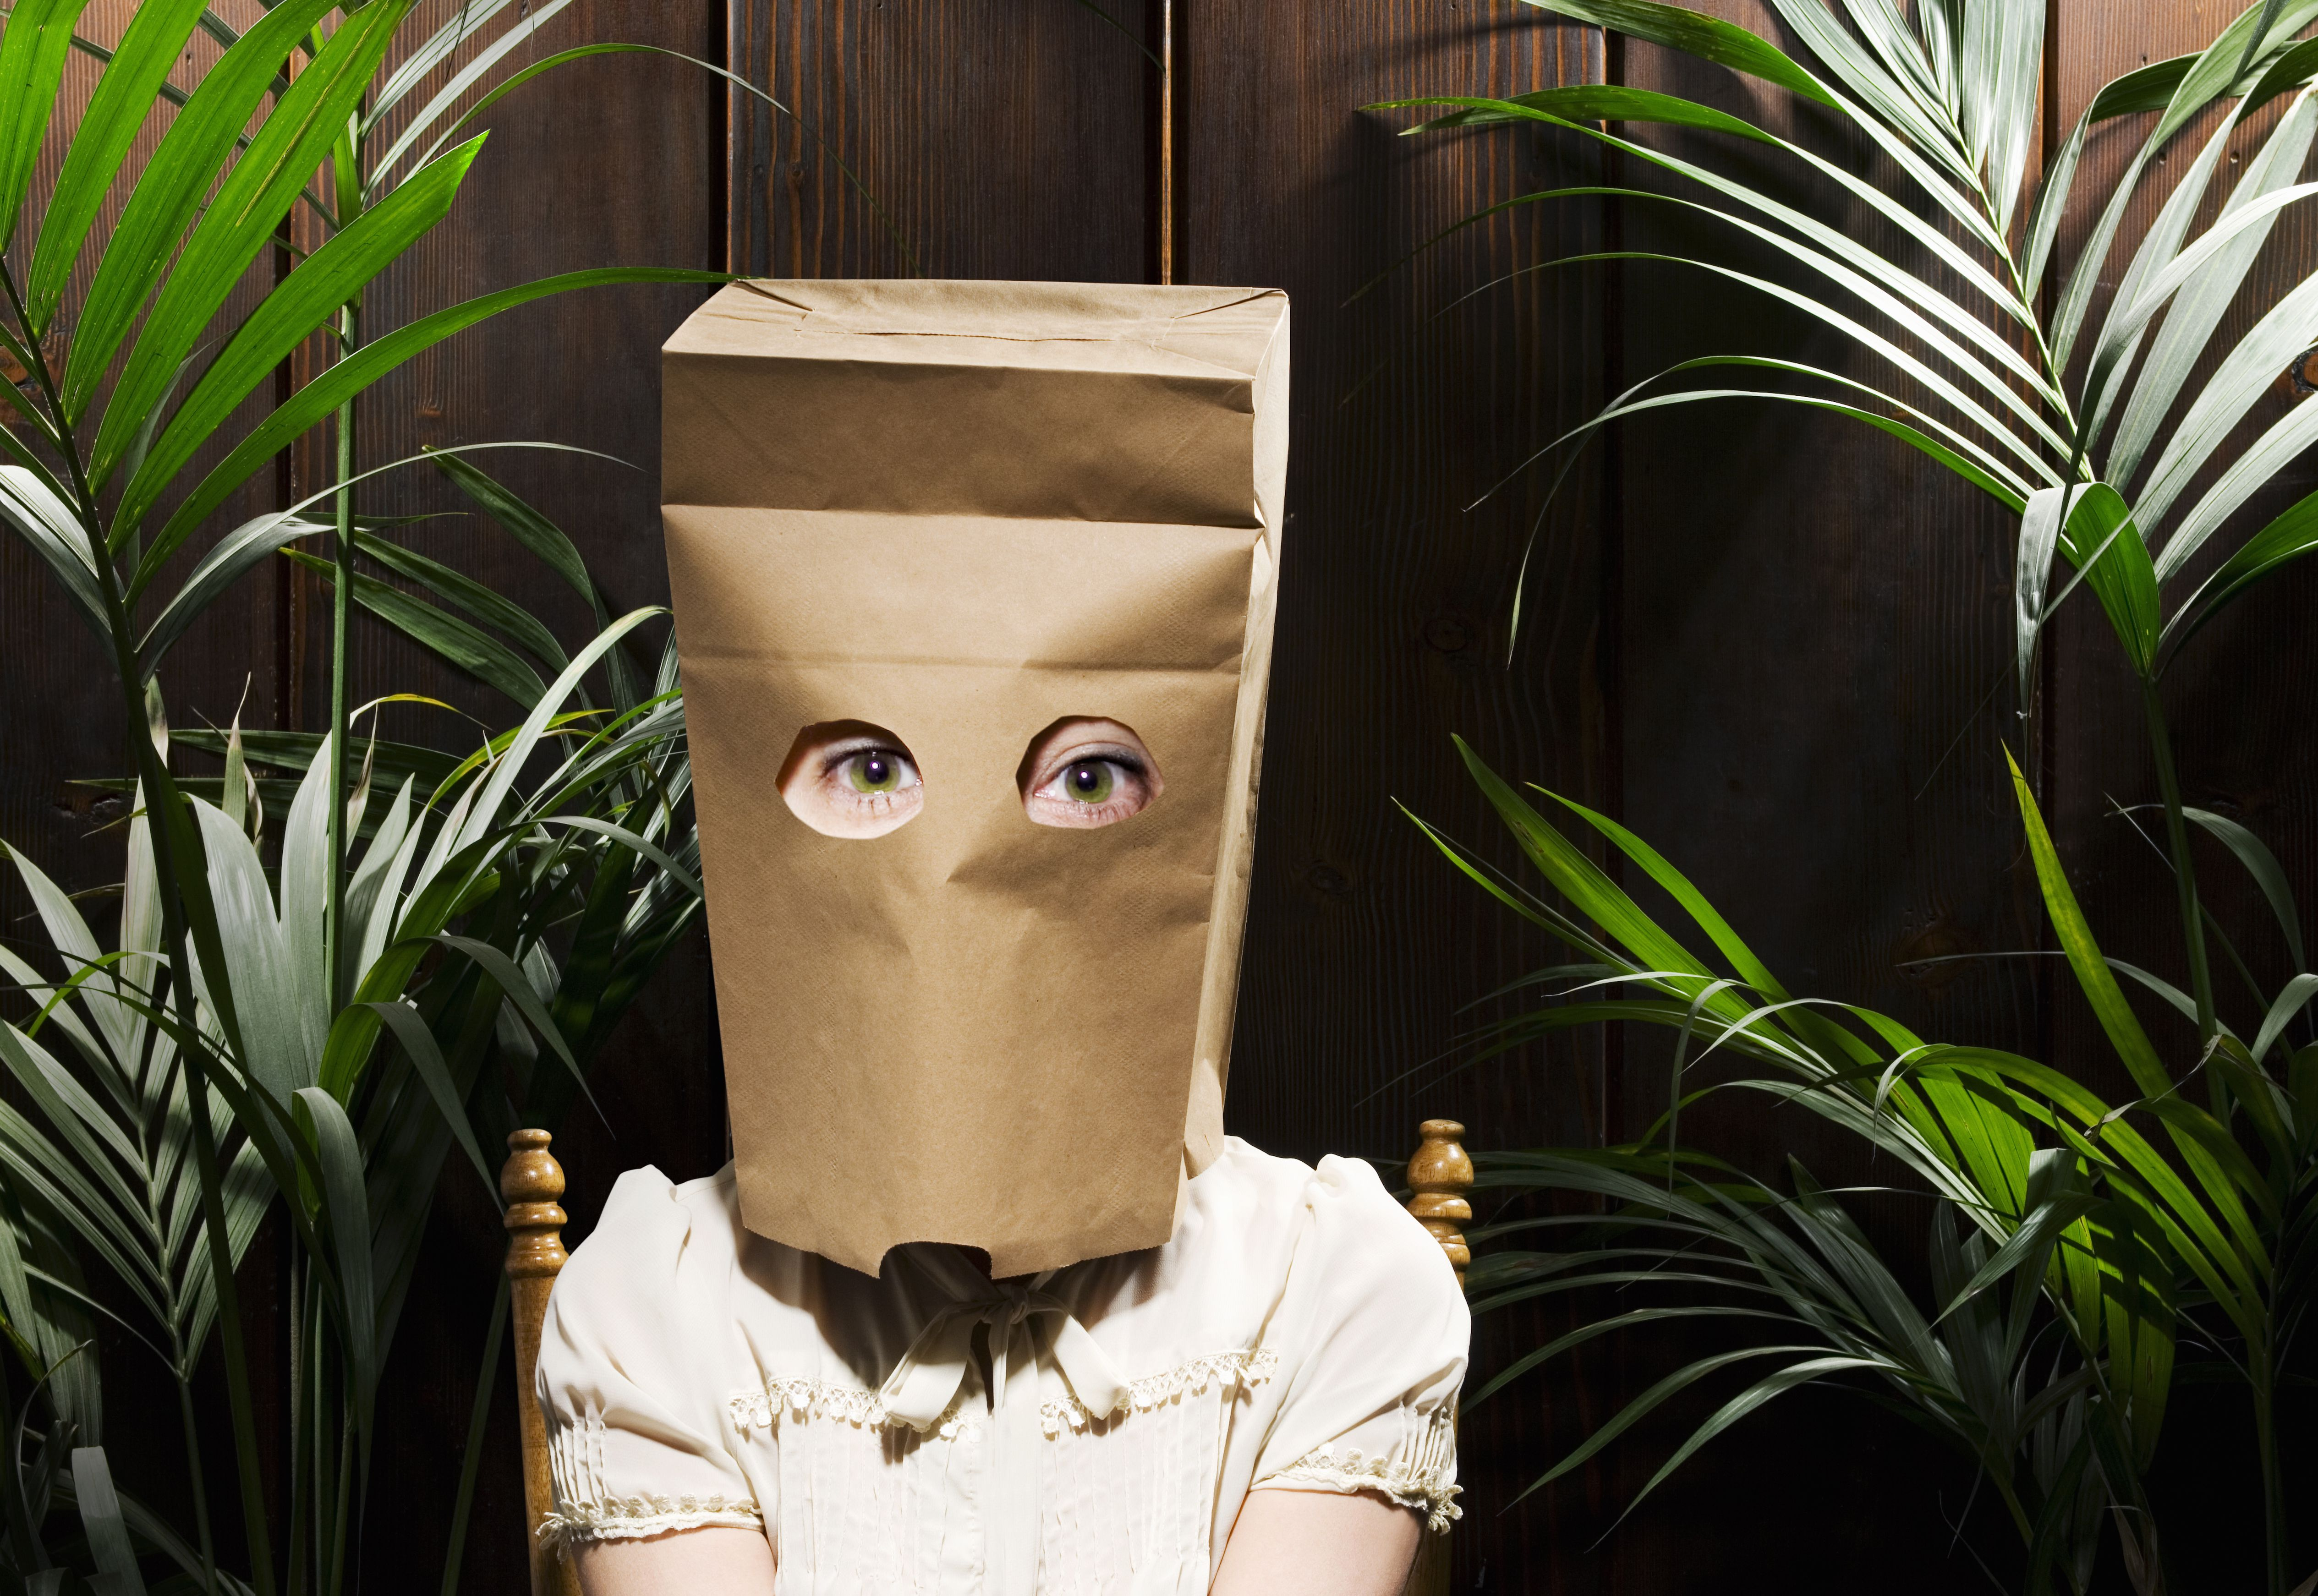 Woman with paper bag over head, eyes cut out